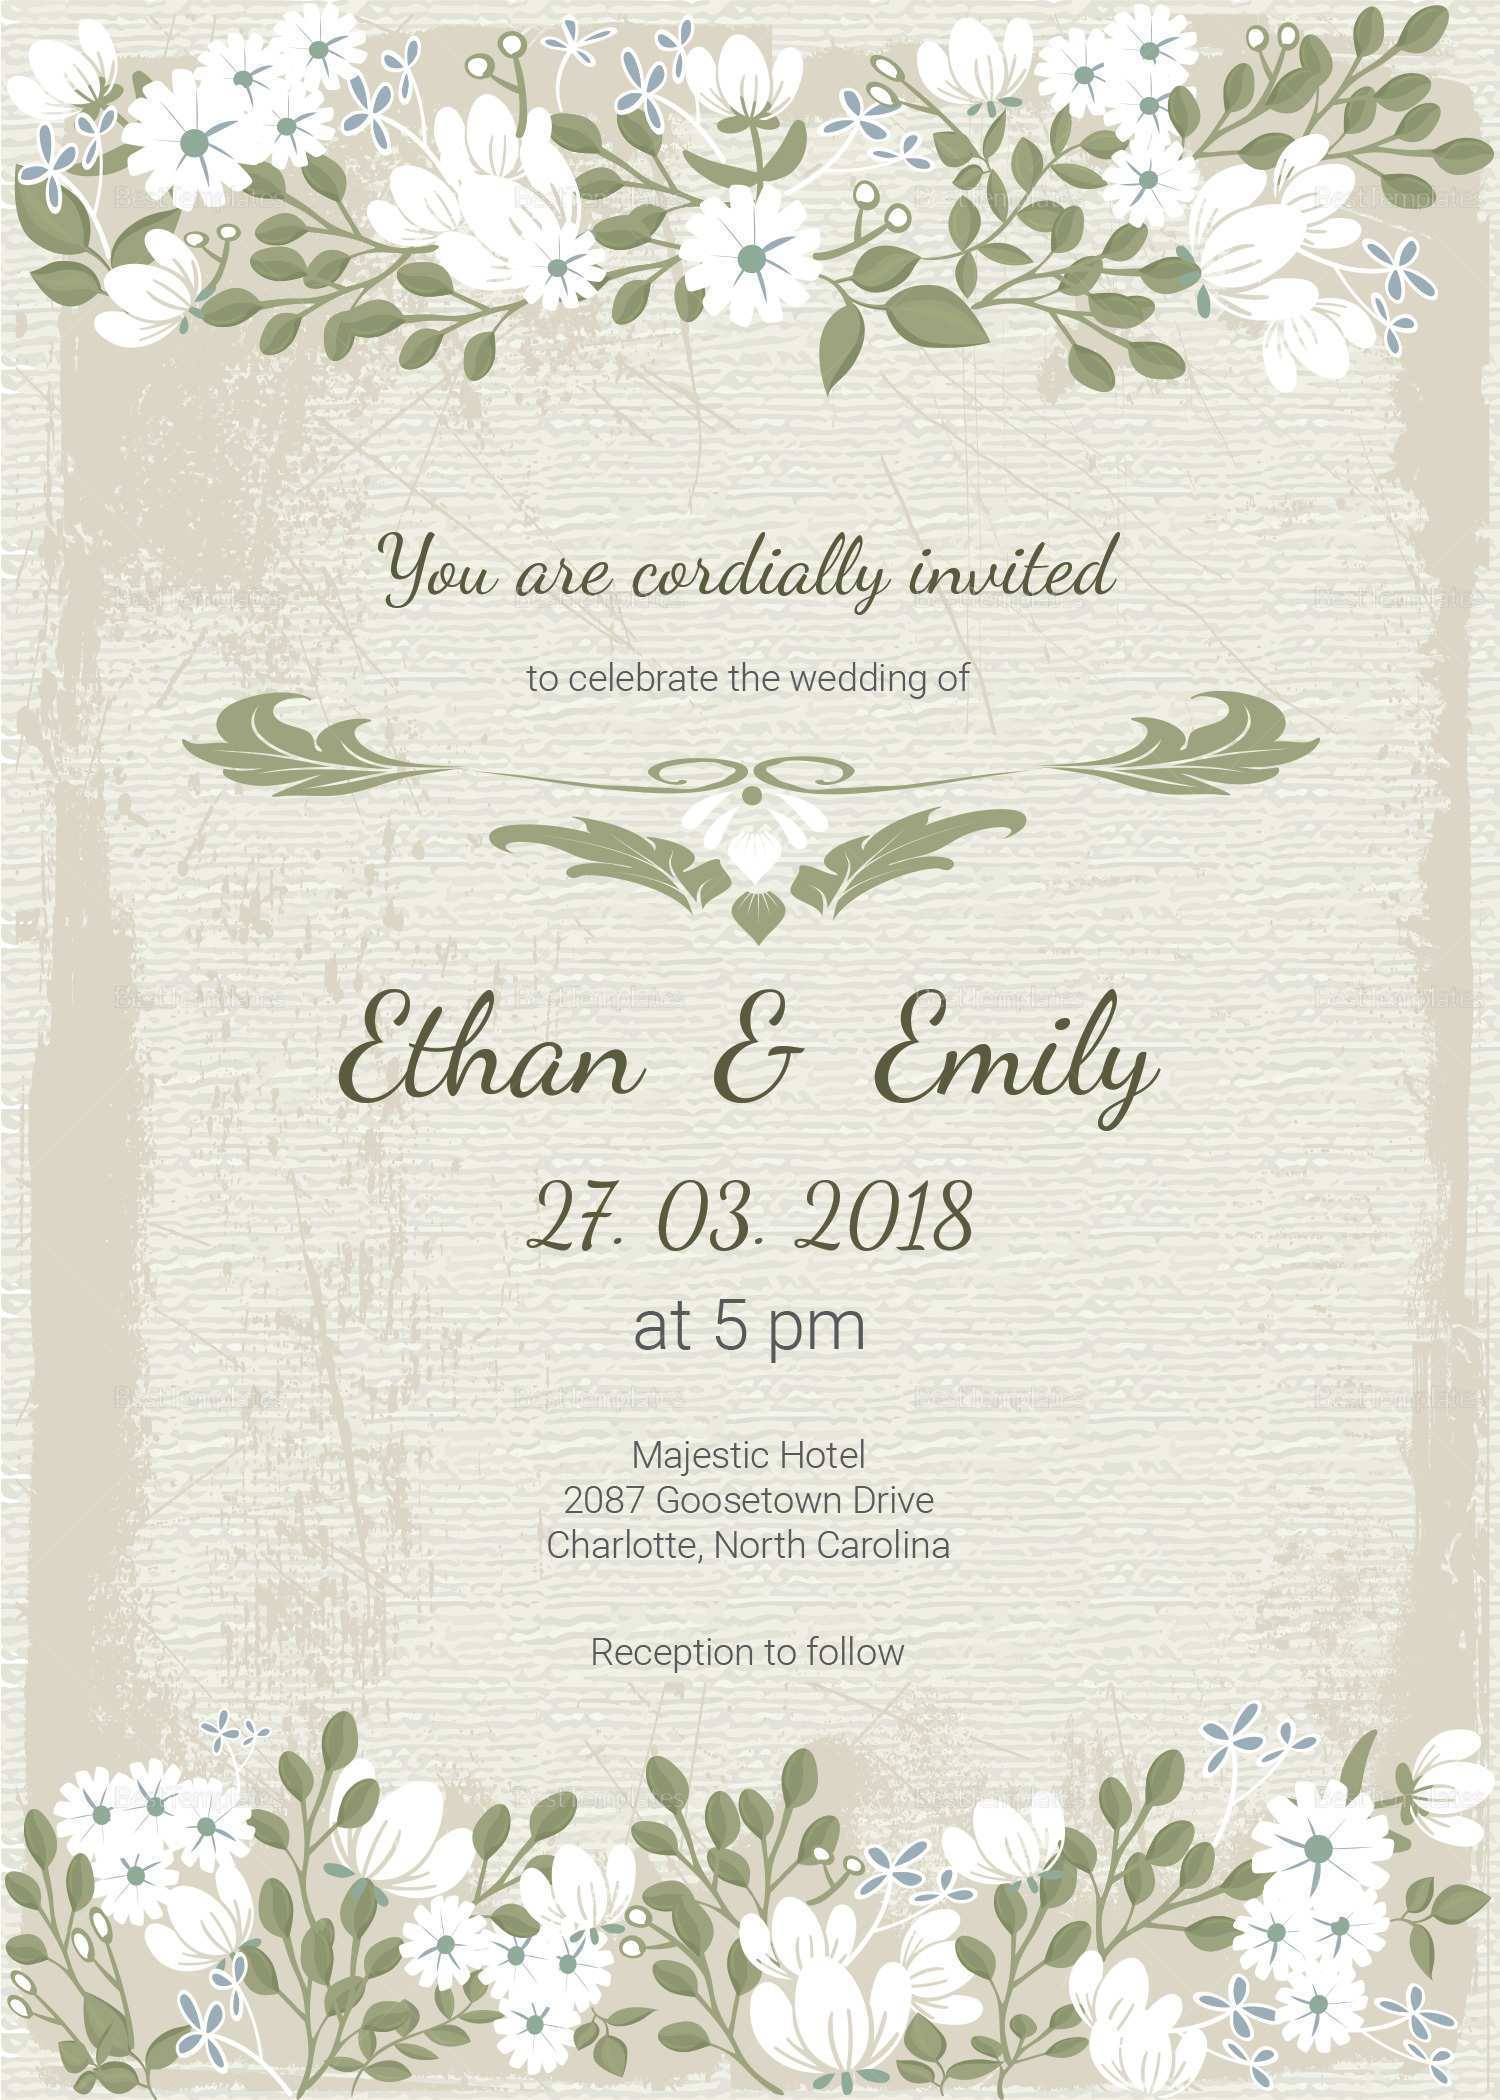 43 Customize Our Free Wedding Card Template Malaysia For Free for Wedding Card Template Malaysia